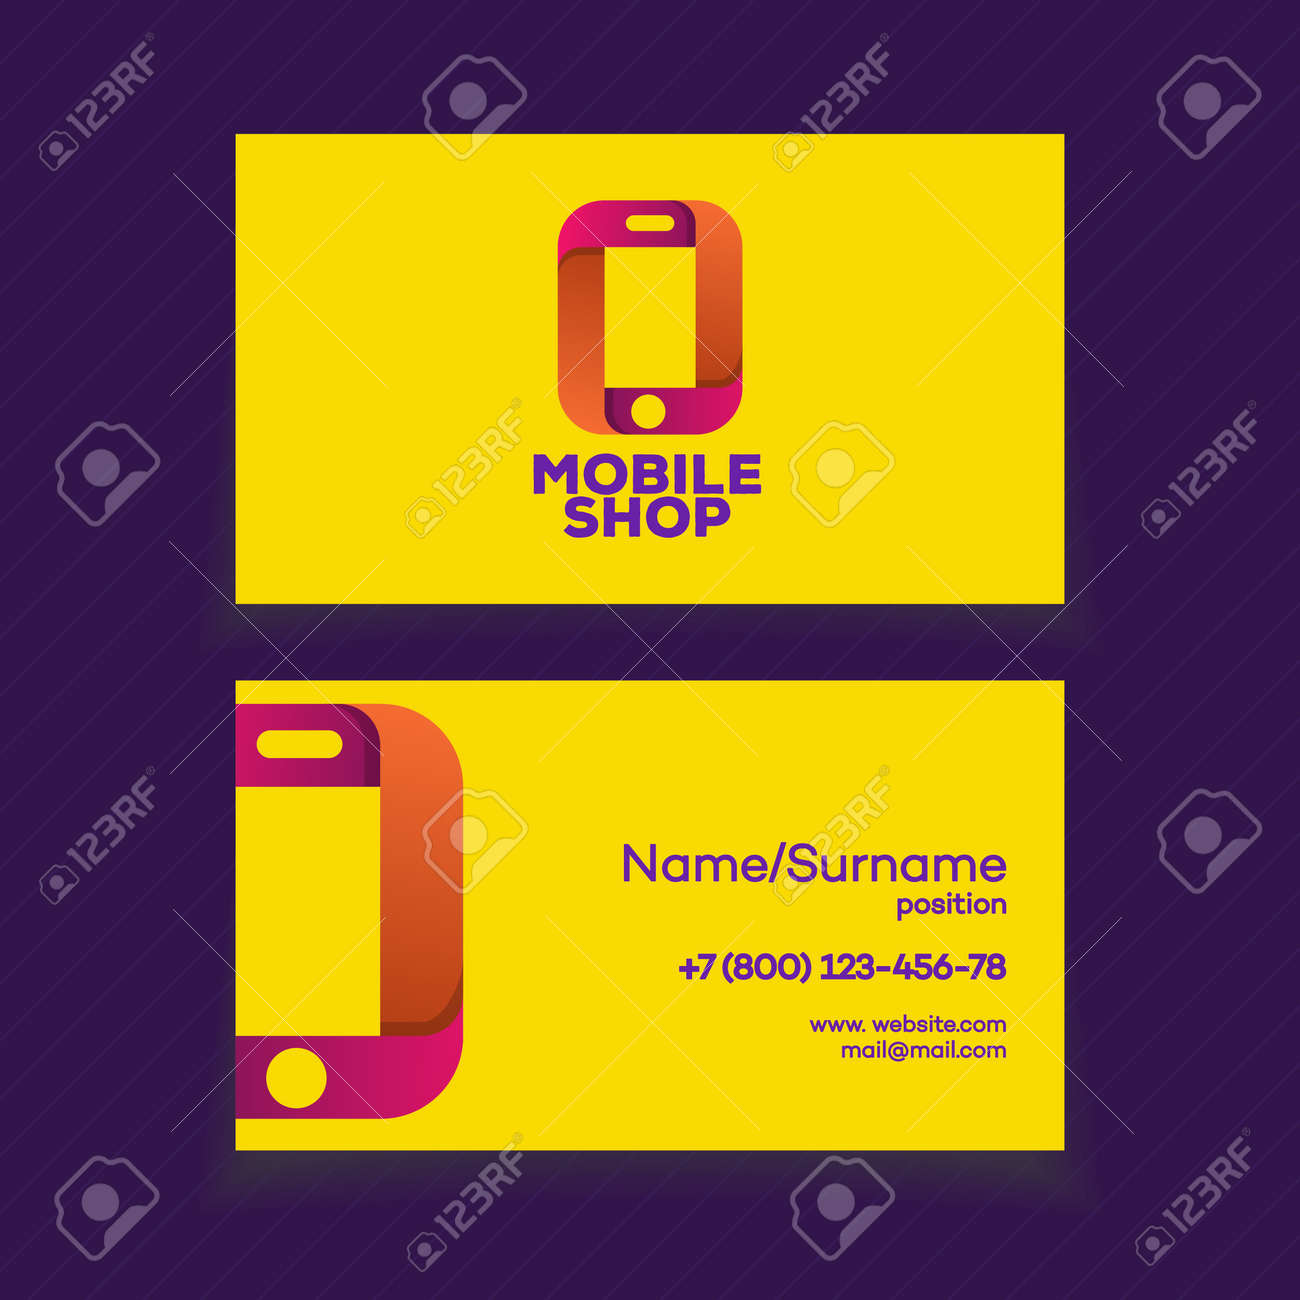 Mobile Shop Business Card Design Template With Phone Logo On.. Stock ...